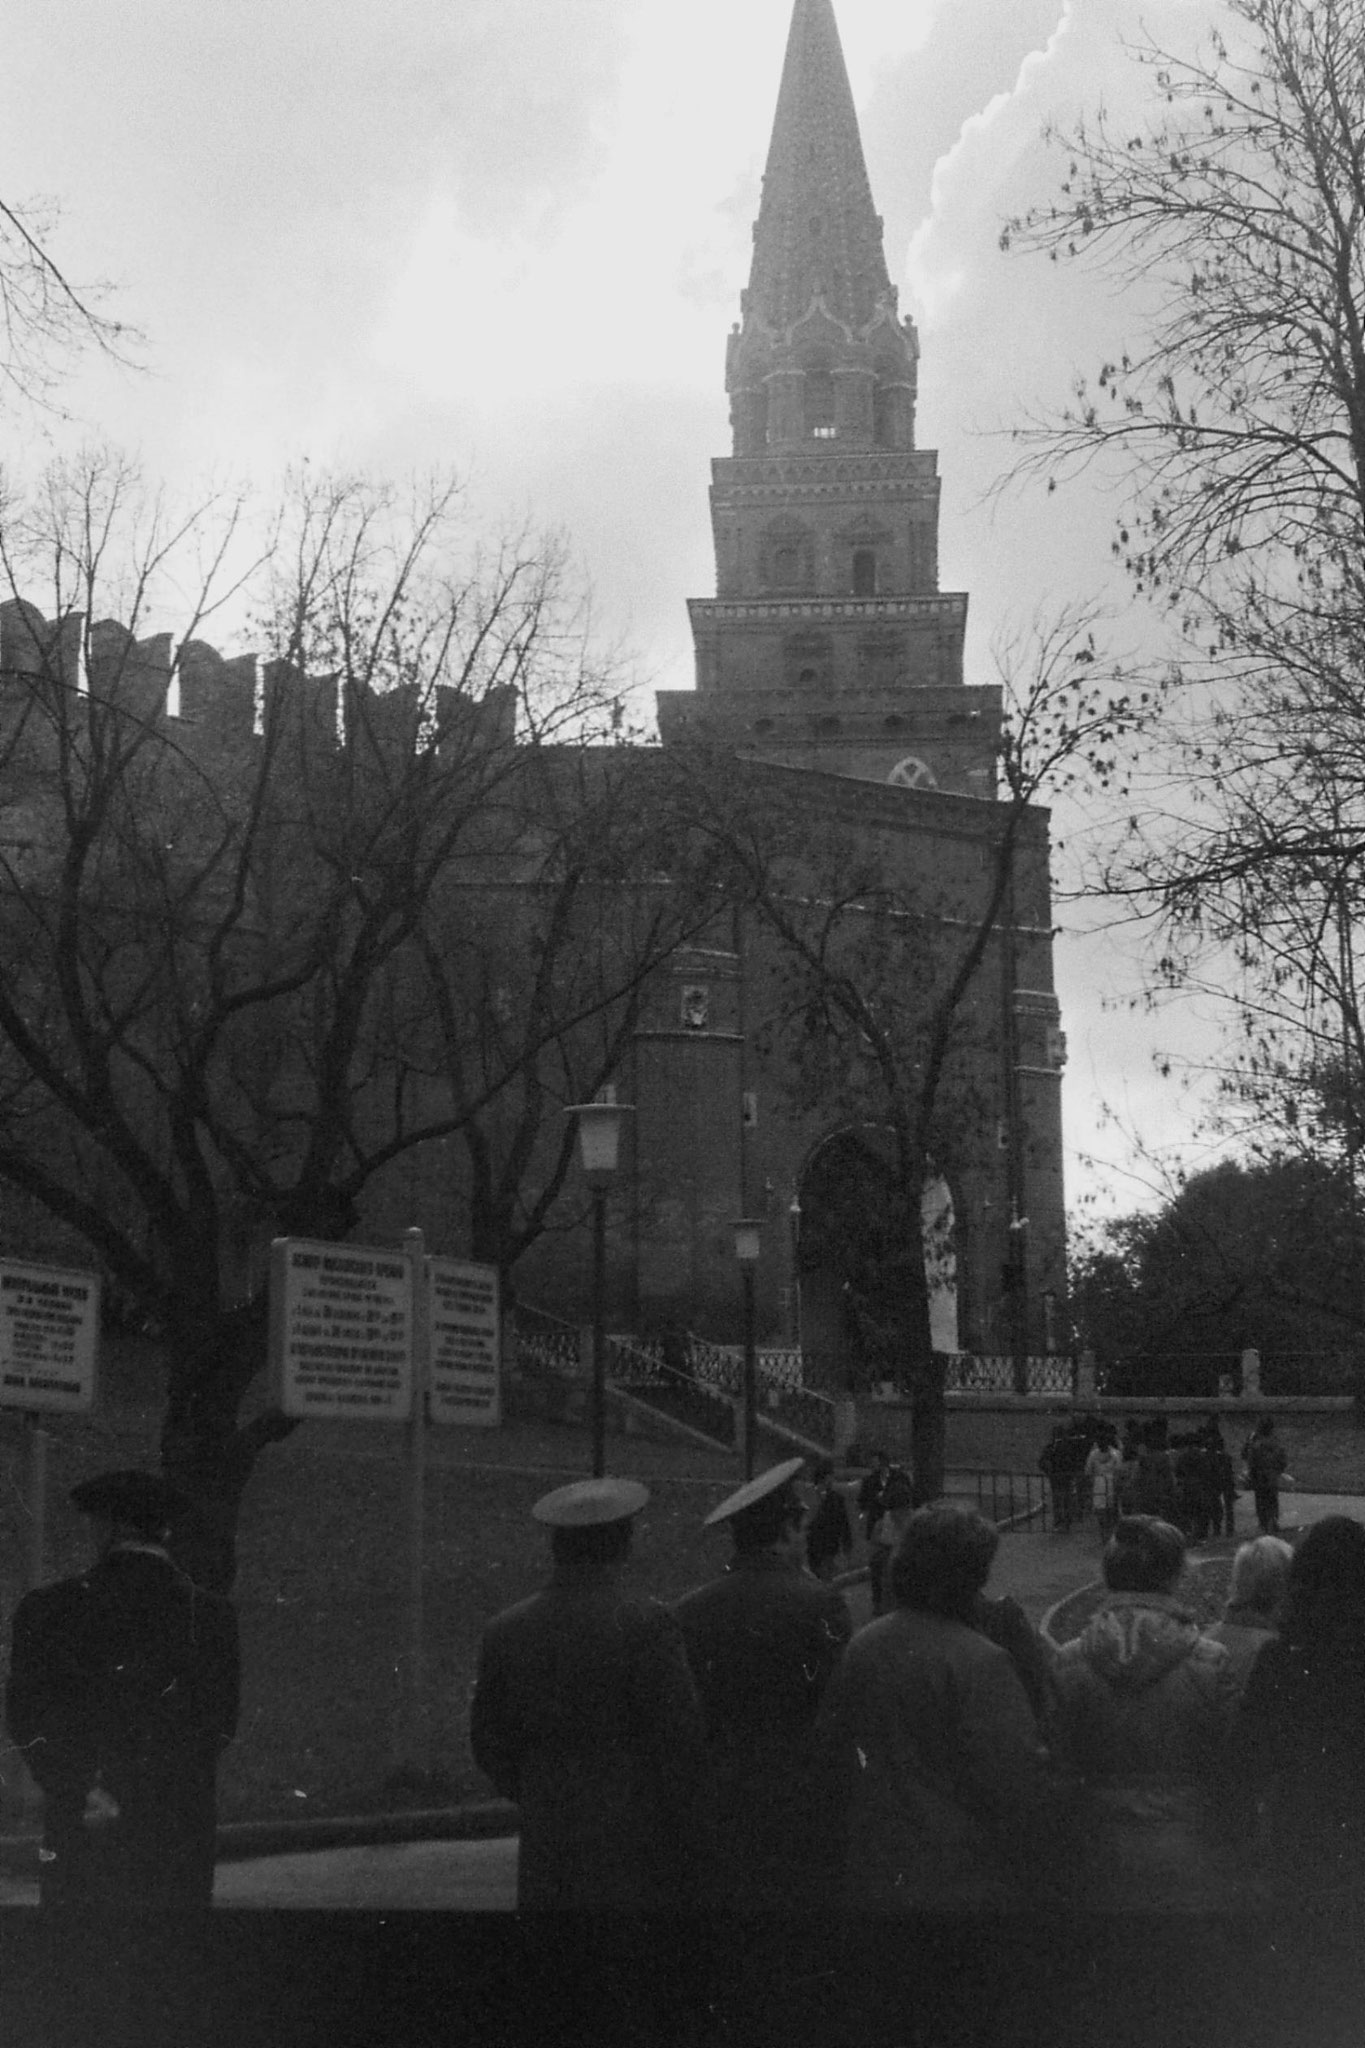 17/10/1988: 31: Kremlin, entrance we took